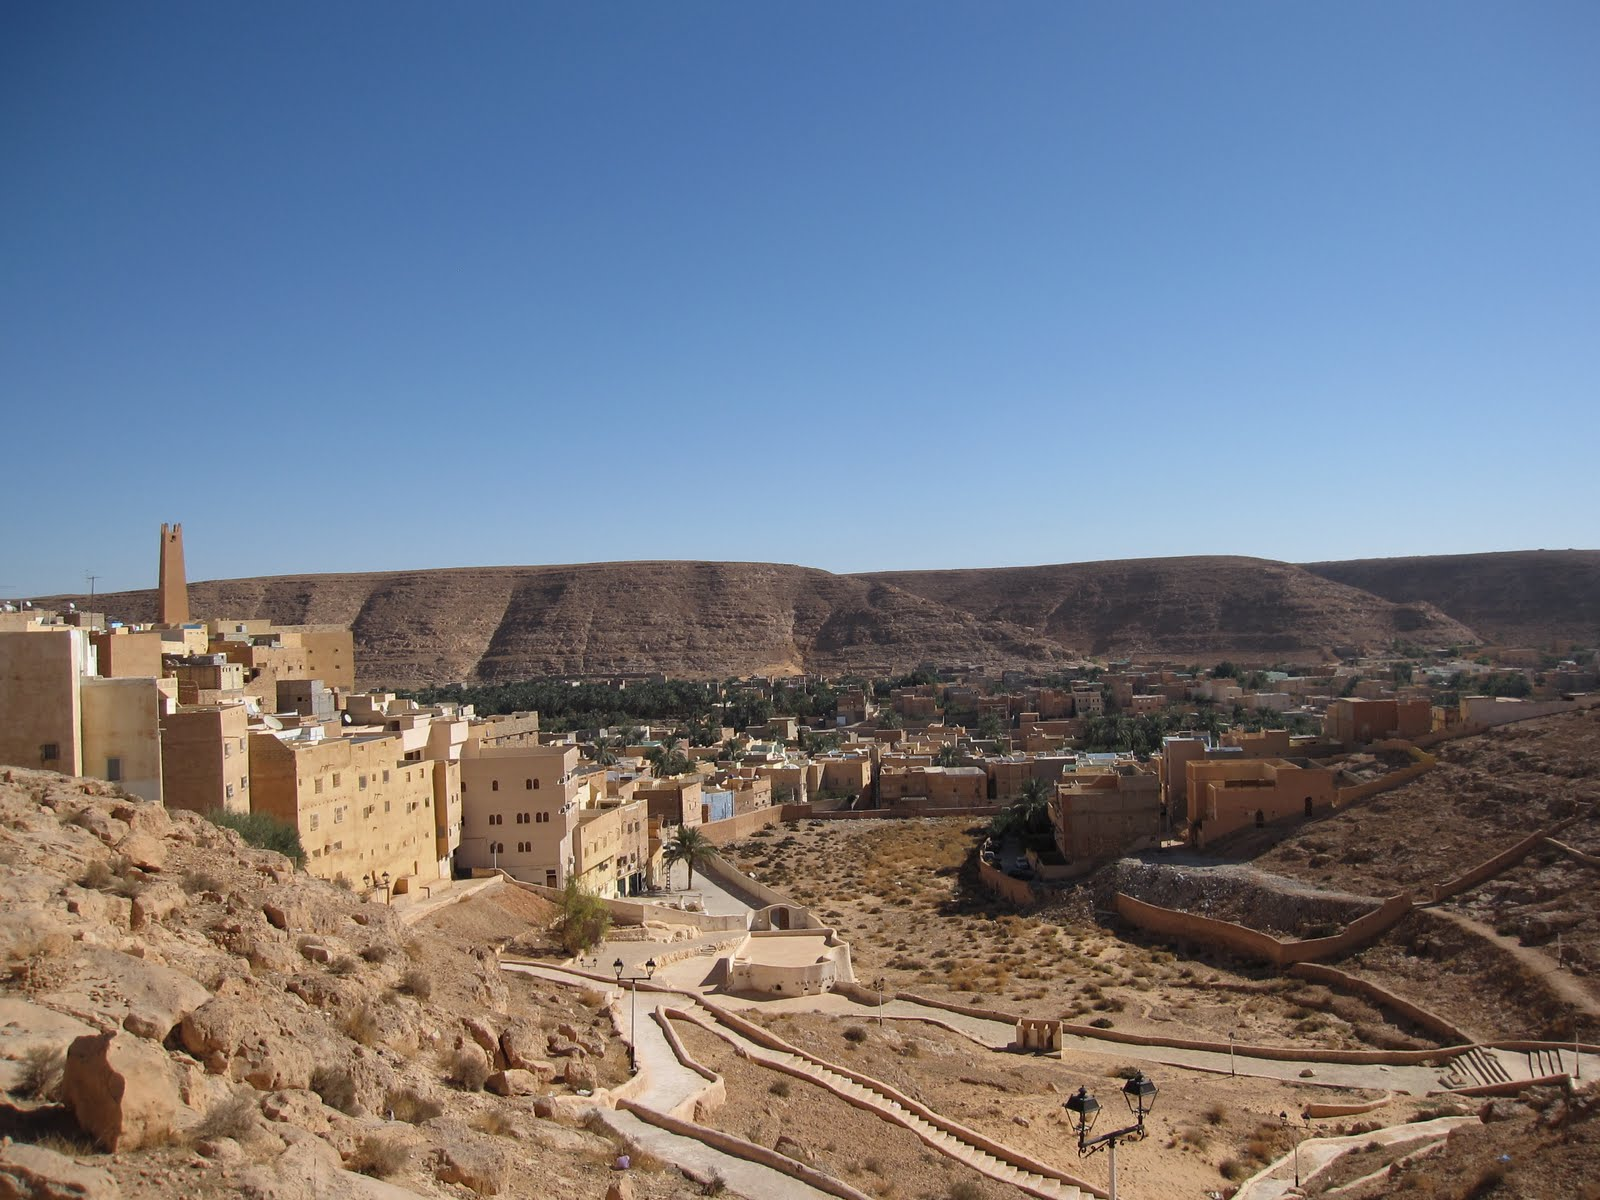 El-Atteuf, the oldest of the five valley towns, founded in 1013